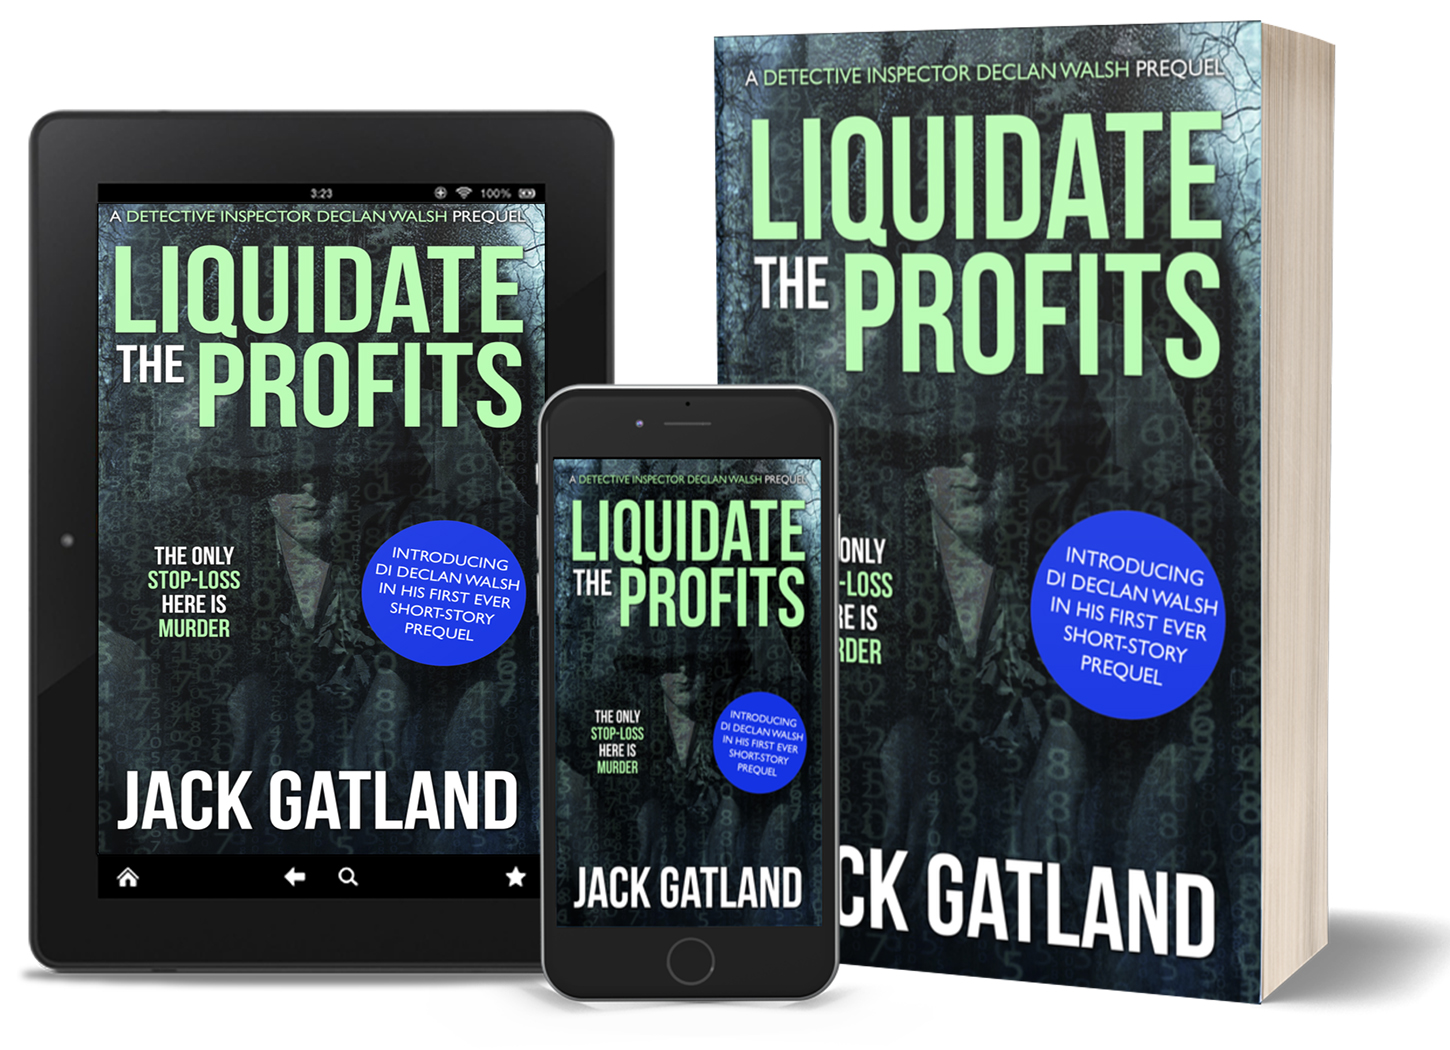 LIQUIDATE THE PROFITS: available now as a free eBook